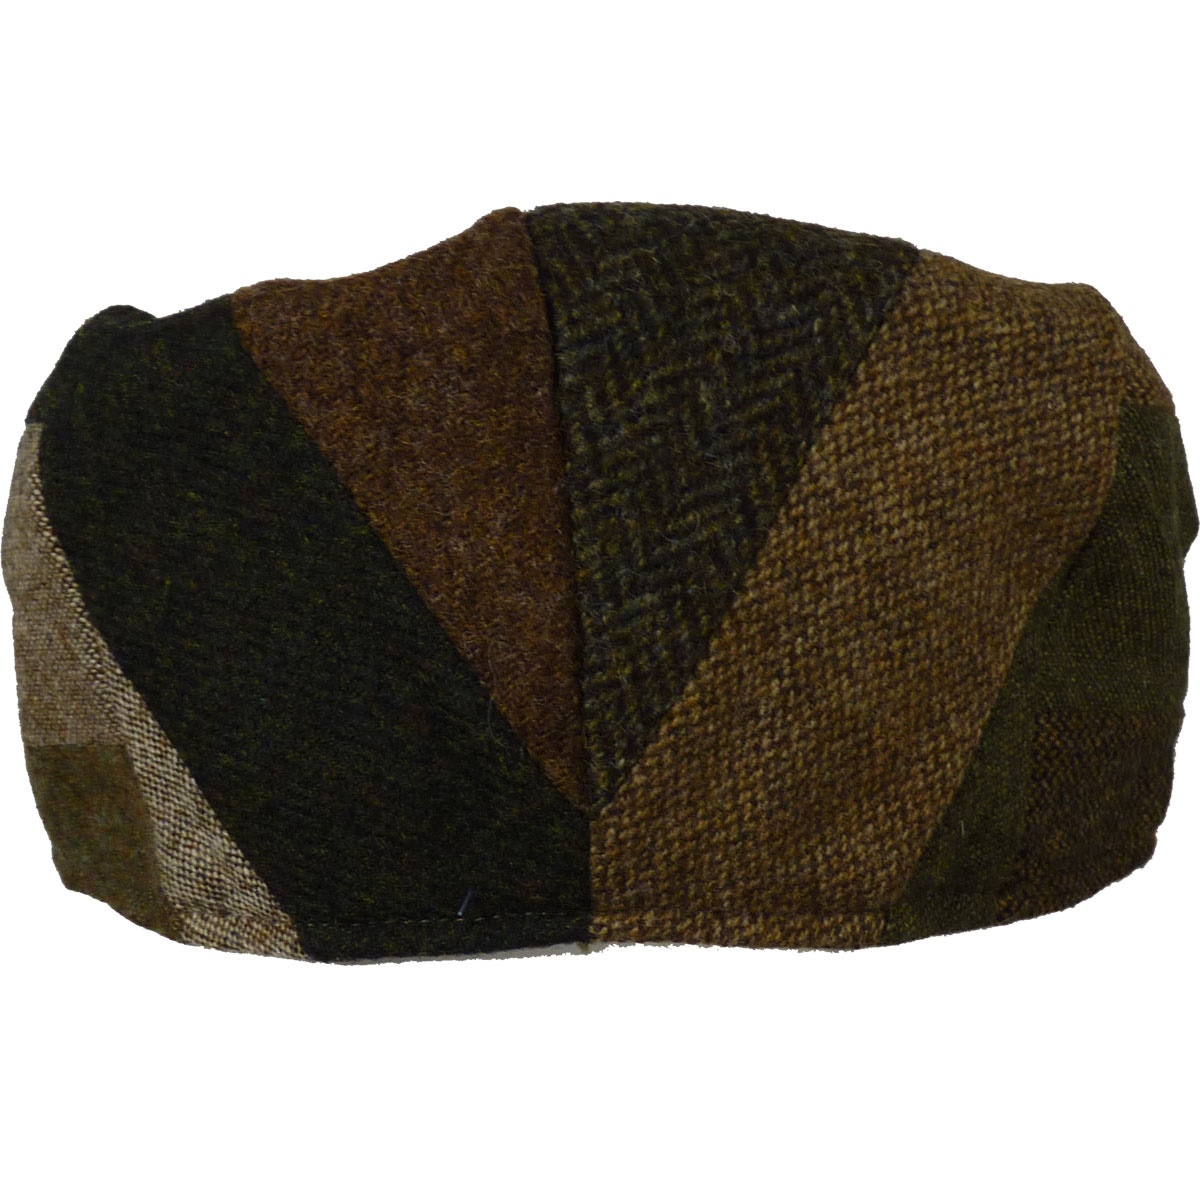 f1b95b237bbe3 Hanna Hat Striped Tweed Patchwork Vintage Cap